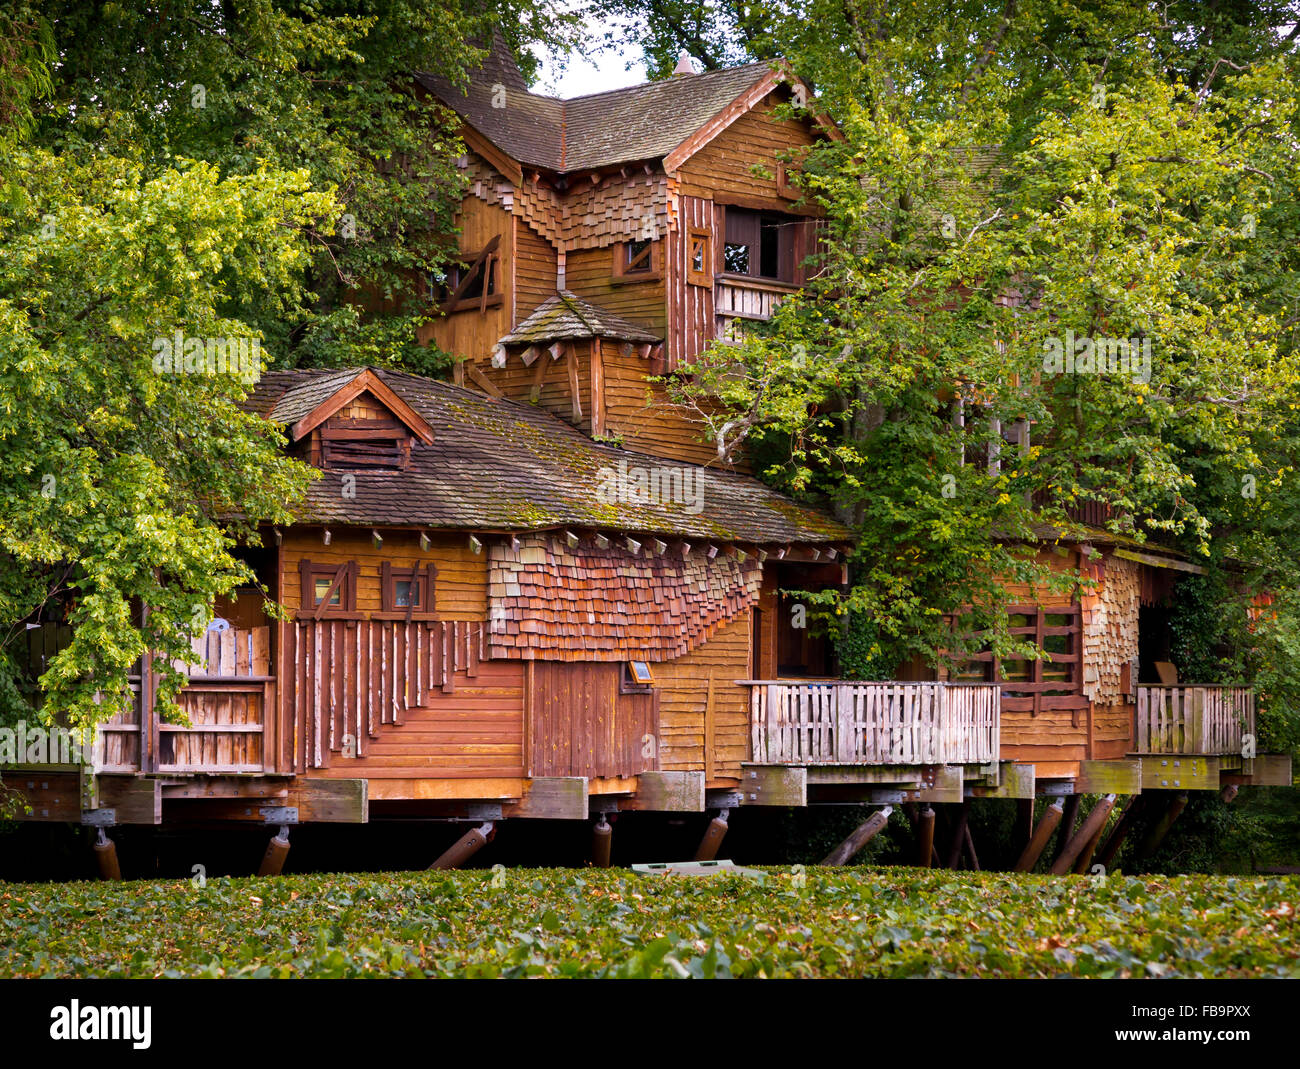 The Wooden Treehouse at Alnwick Gardens in Northumberland England UK designed by Jacques and Peter Wirtz - Stock Image